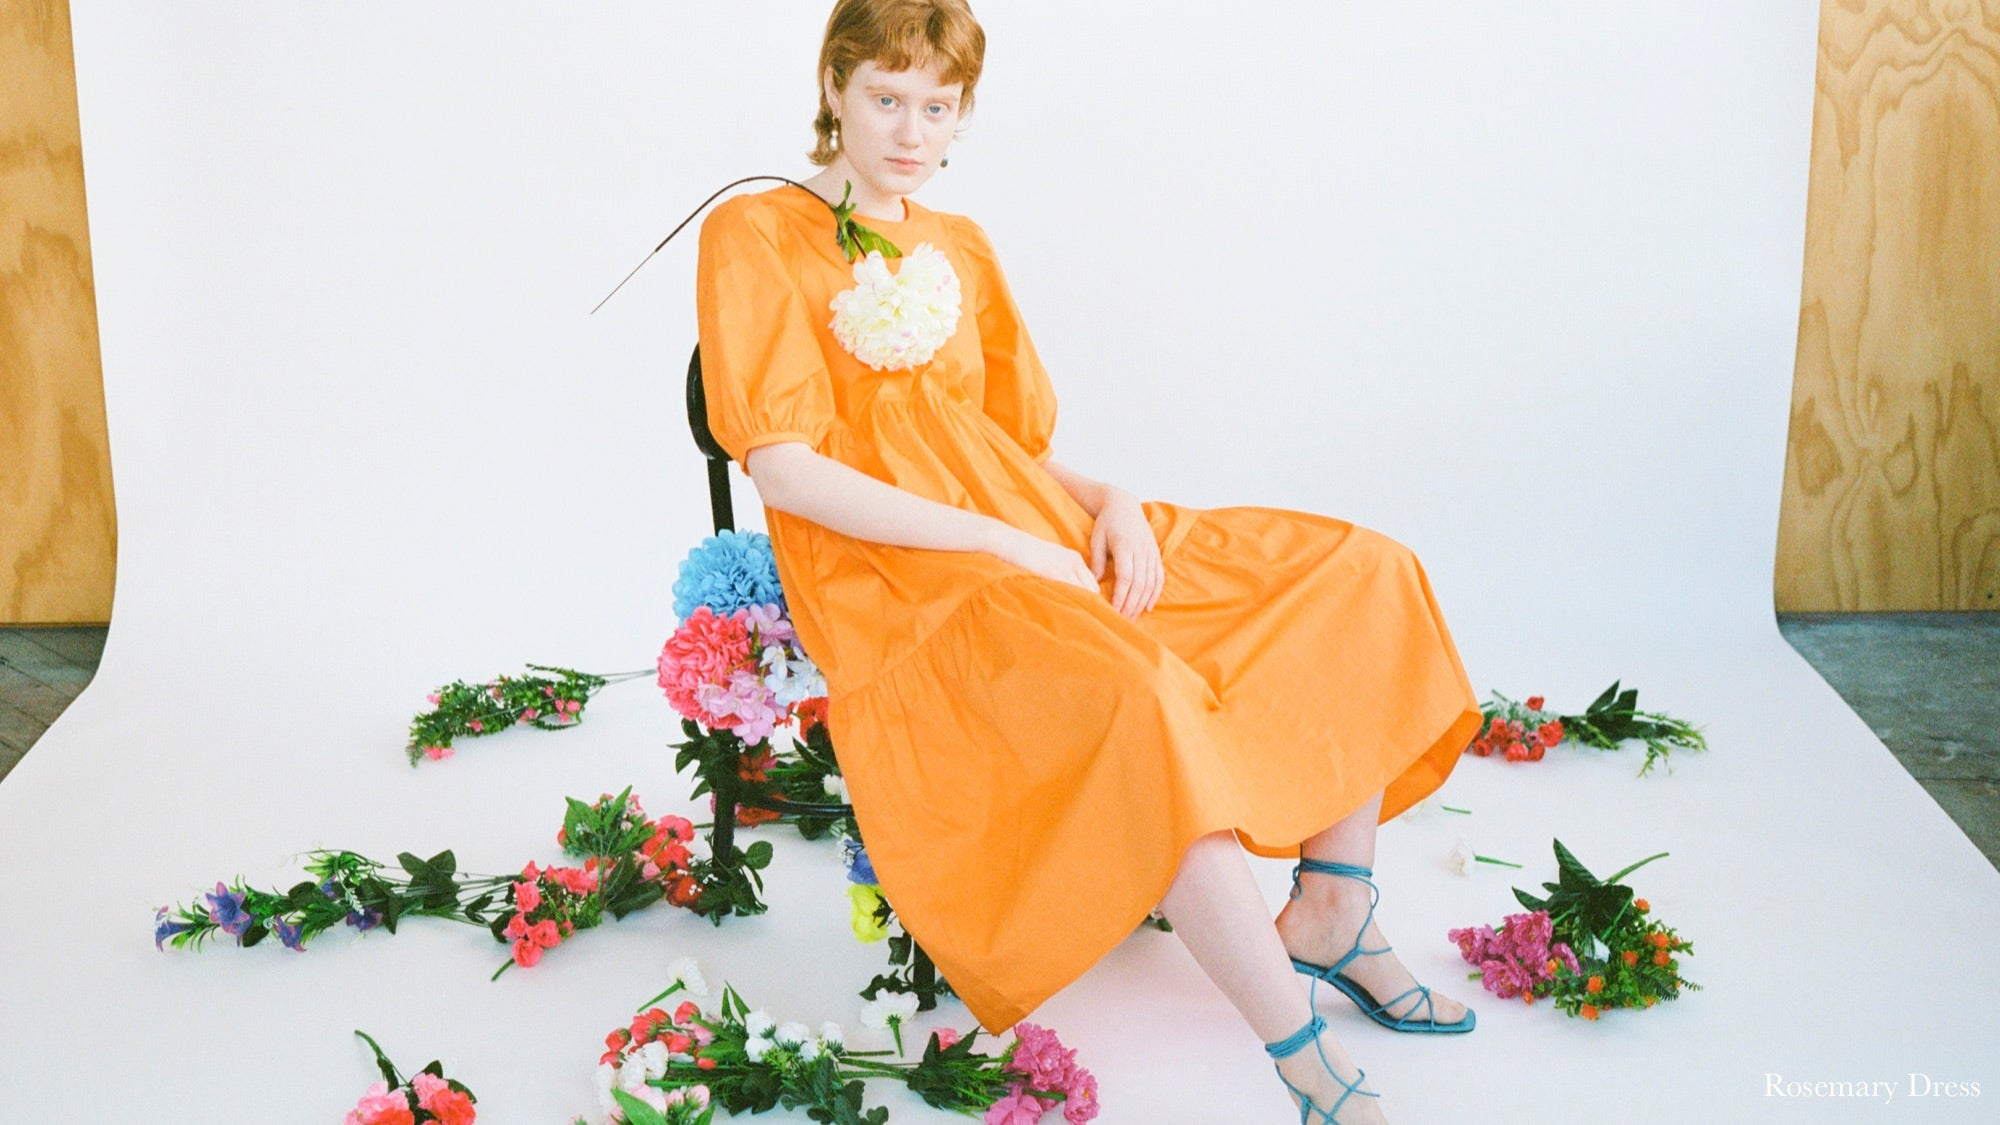 WRAY PF20 Lookbook: carrot orange Rosemary Dress with puff sleeves and tiered hemline